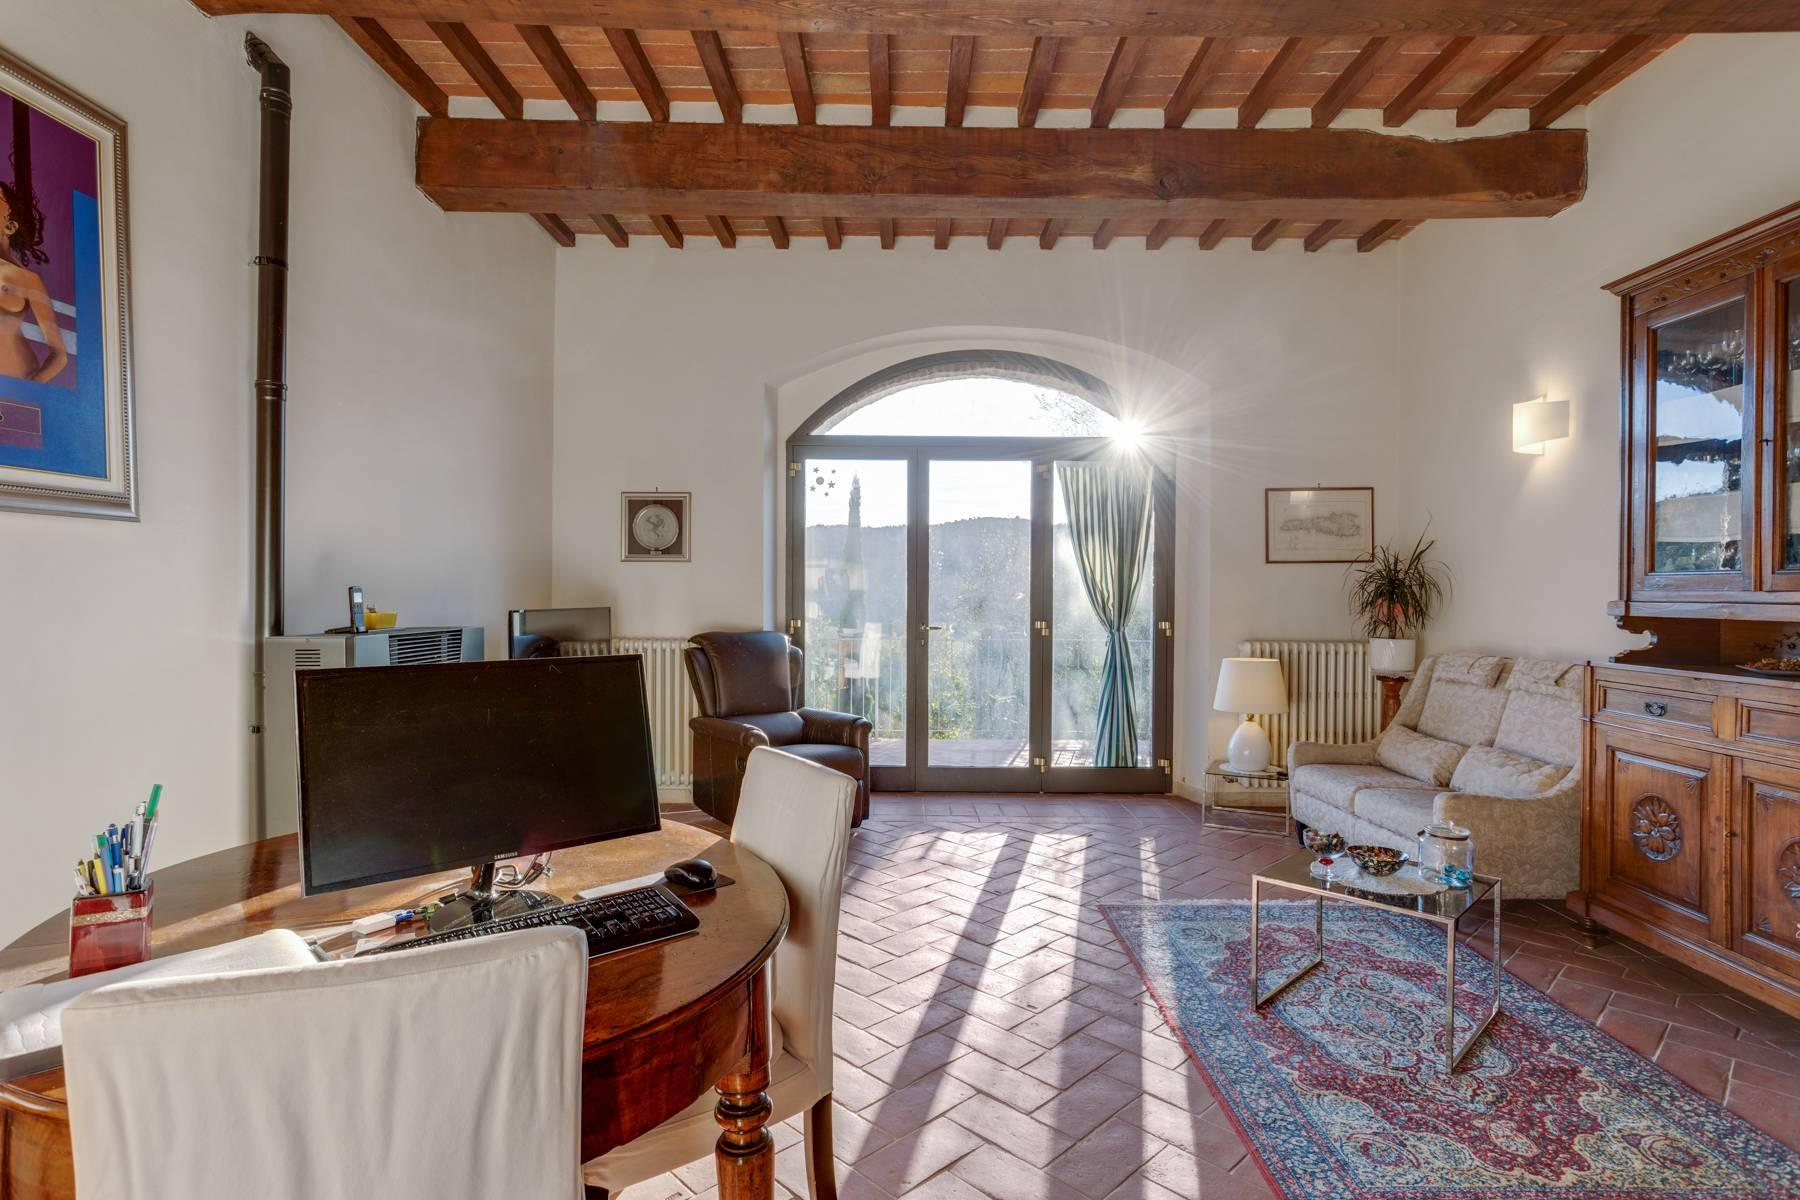 Beautiful country house with agriturismo and vineyard walking distance from Montepulciano - 10